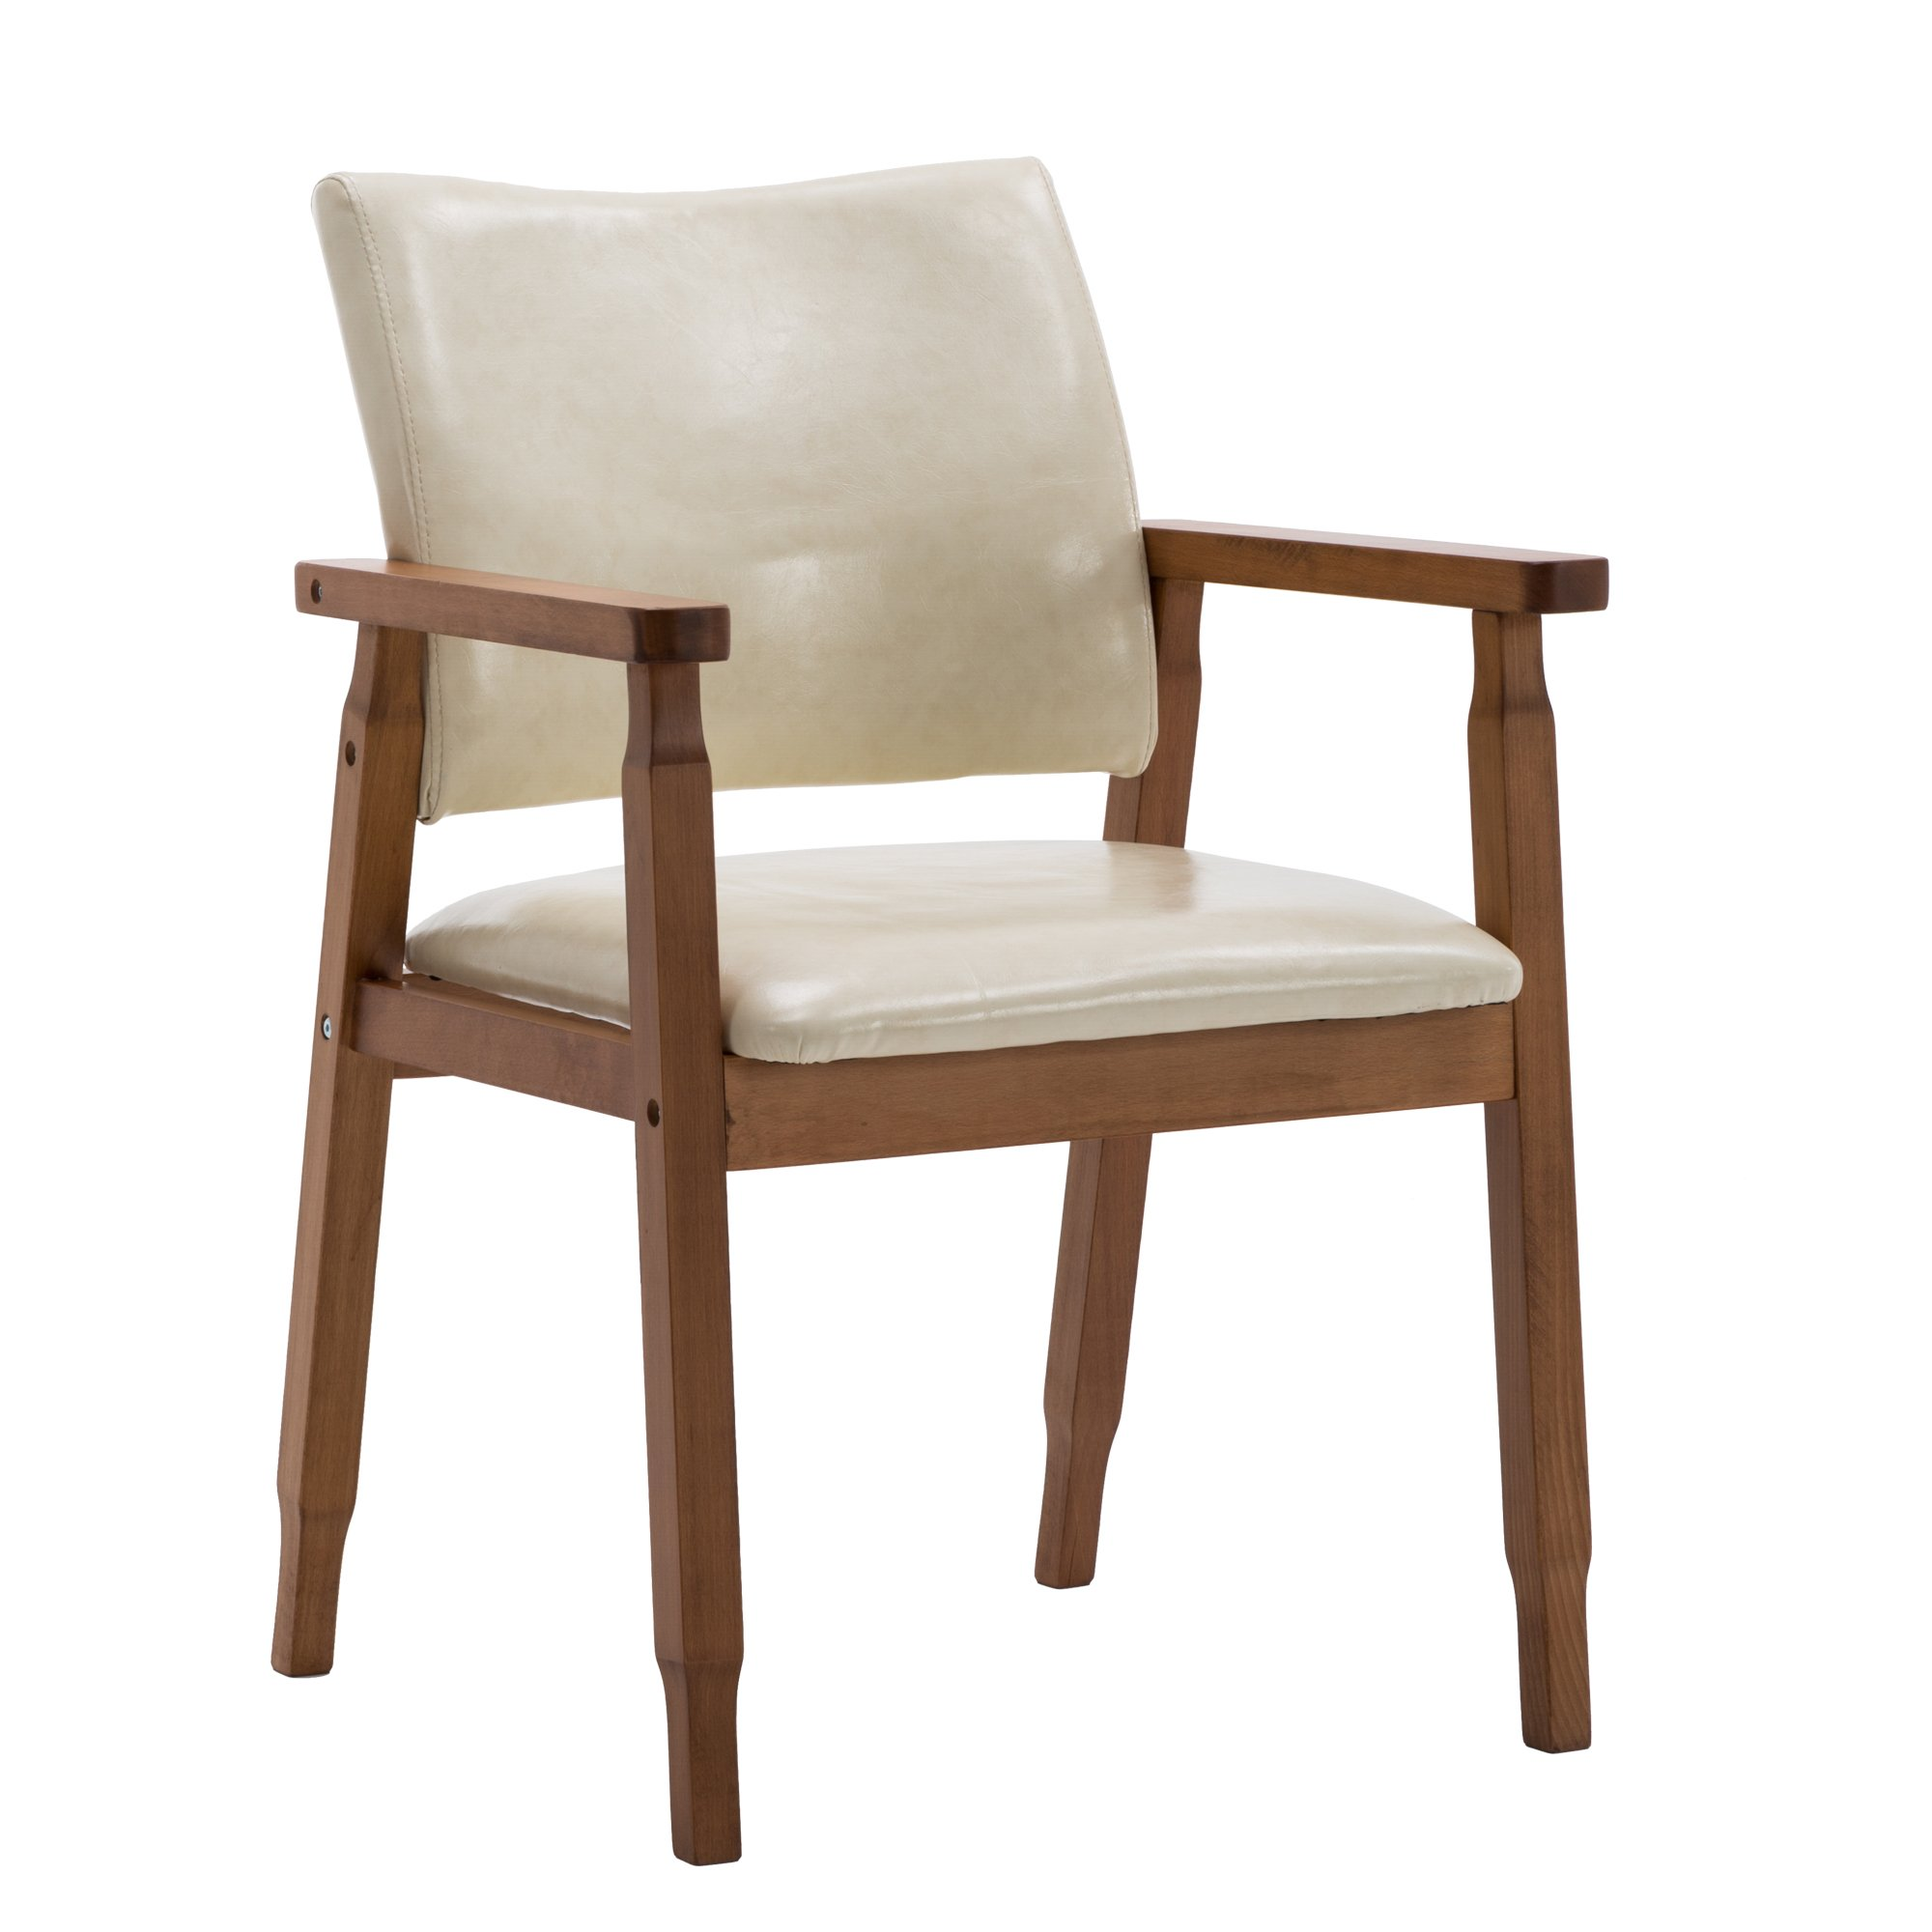 NOBPEINT Mid-Century Dining Side Chair With Faux Leather Seat in Tan, Arm Chair in Walnut